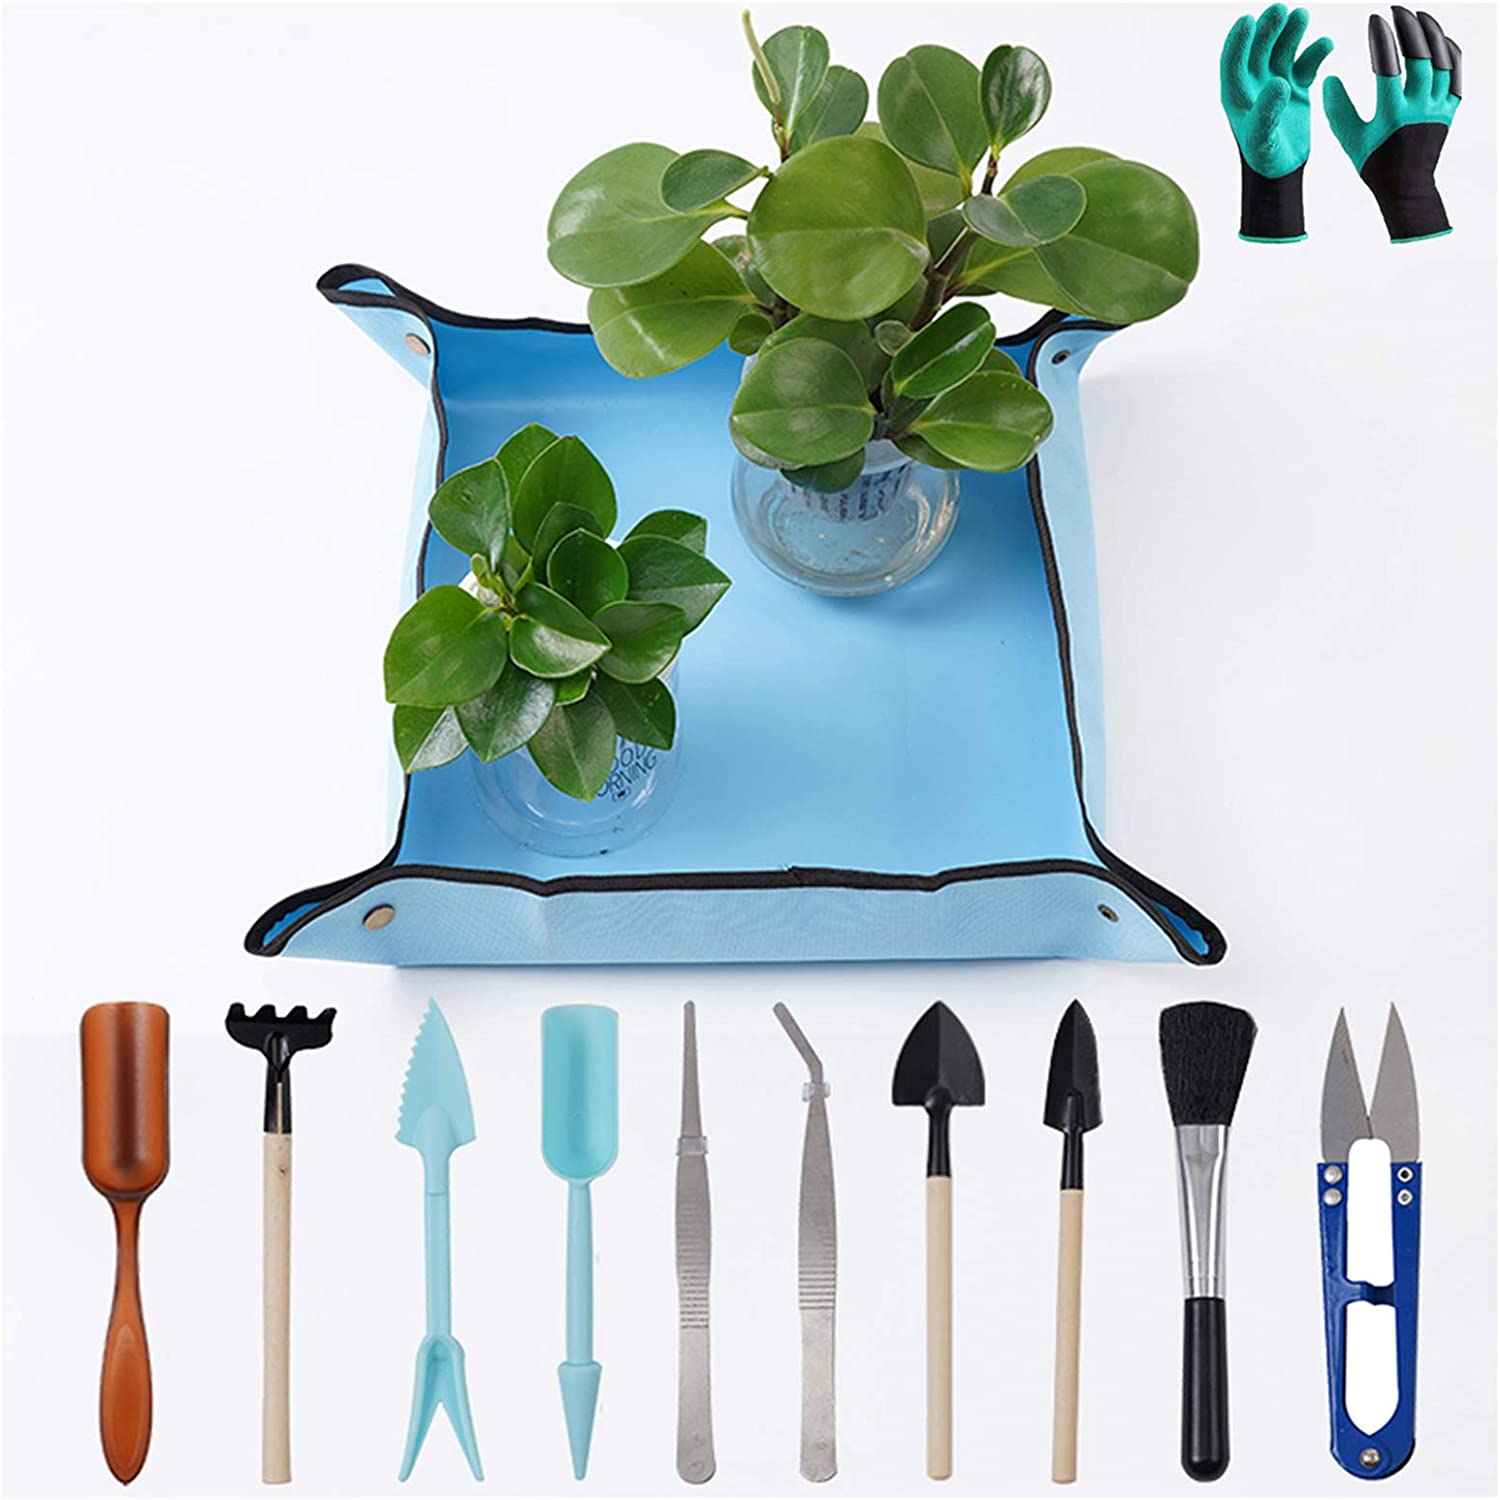 "Potting Mat 20x20"" Square Garden Repotting Mat with Garden Tools Set & Garden Gloves for Indoor and Outdoor Use Keep Your Table Balcony Floor and Clothes Clean Small Size"